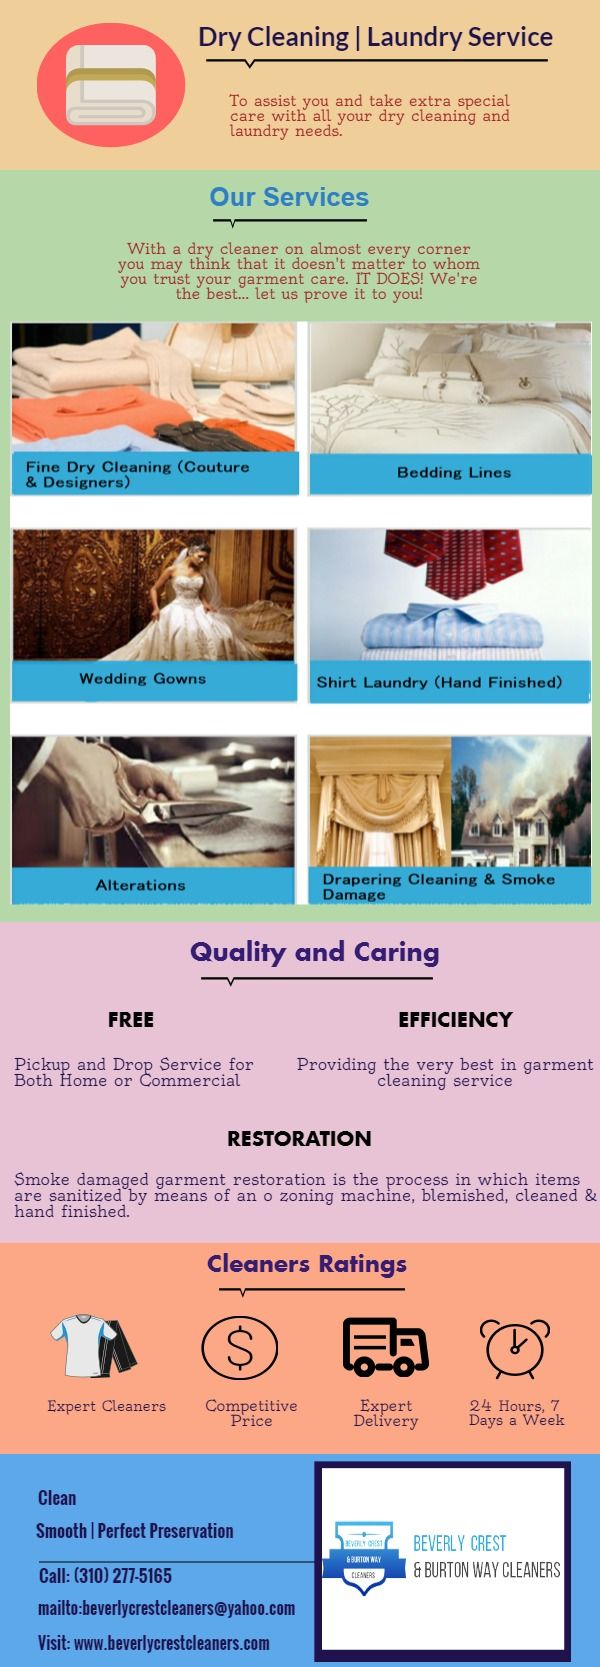 Are You Looking for Professional Garment Services:- Beverly Crest and Burton Way Cleaners is a family run business and independent. We offer high quality dry cleaning and laundry service, gentle way to clean your clothes. Call: (310) 277-5165.